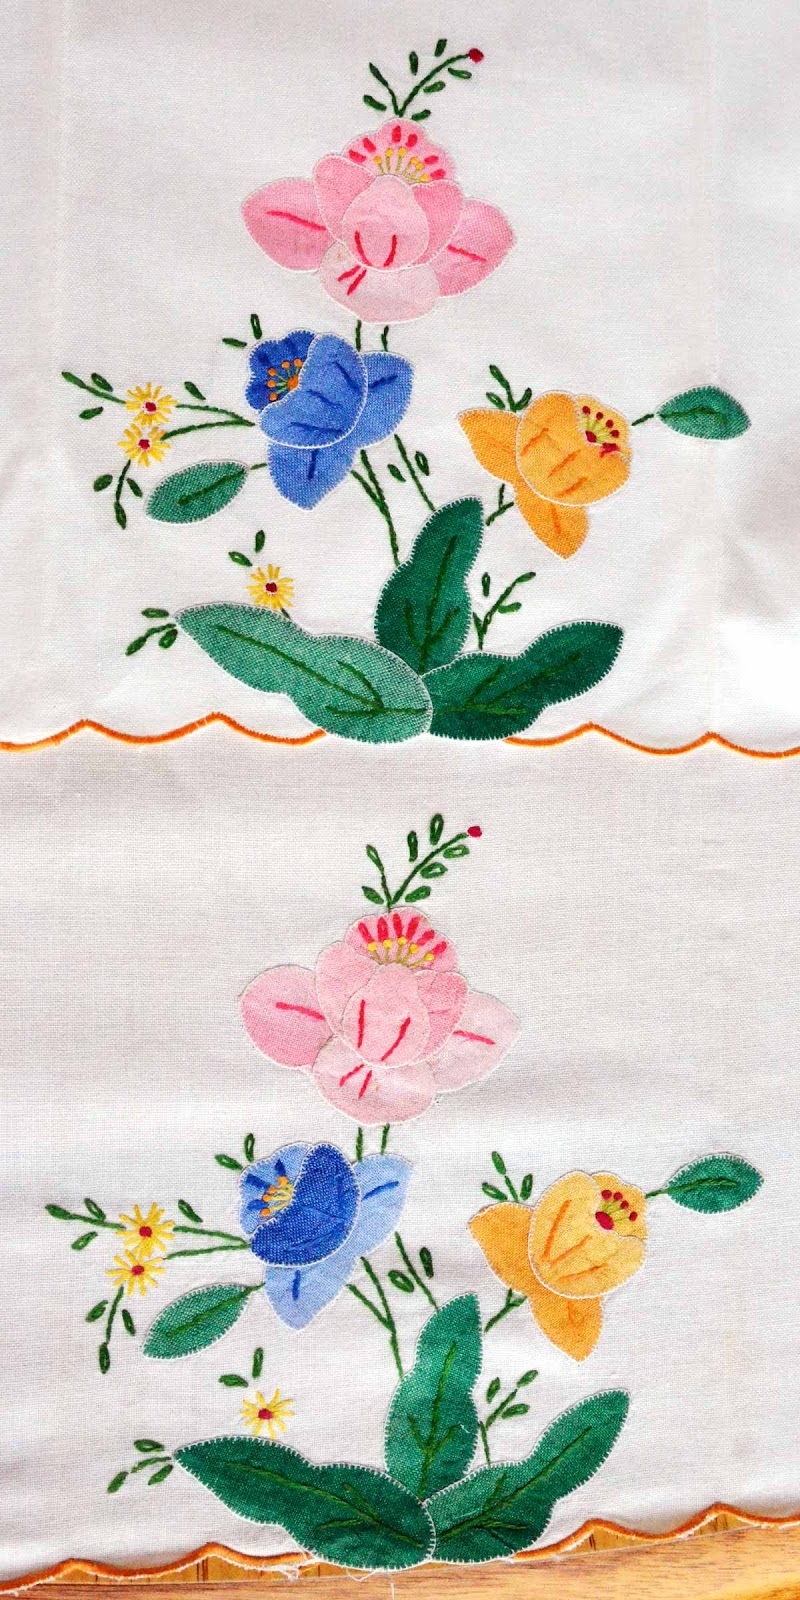 Vintage applique needlework flowers blanket stitch